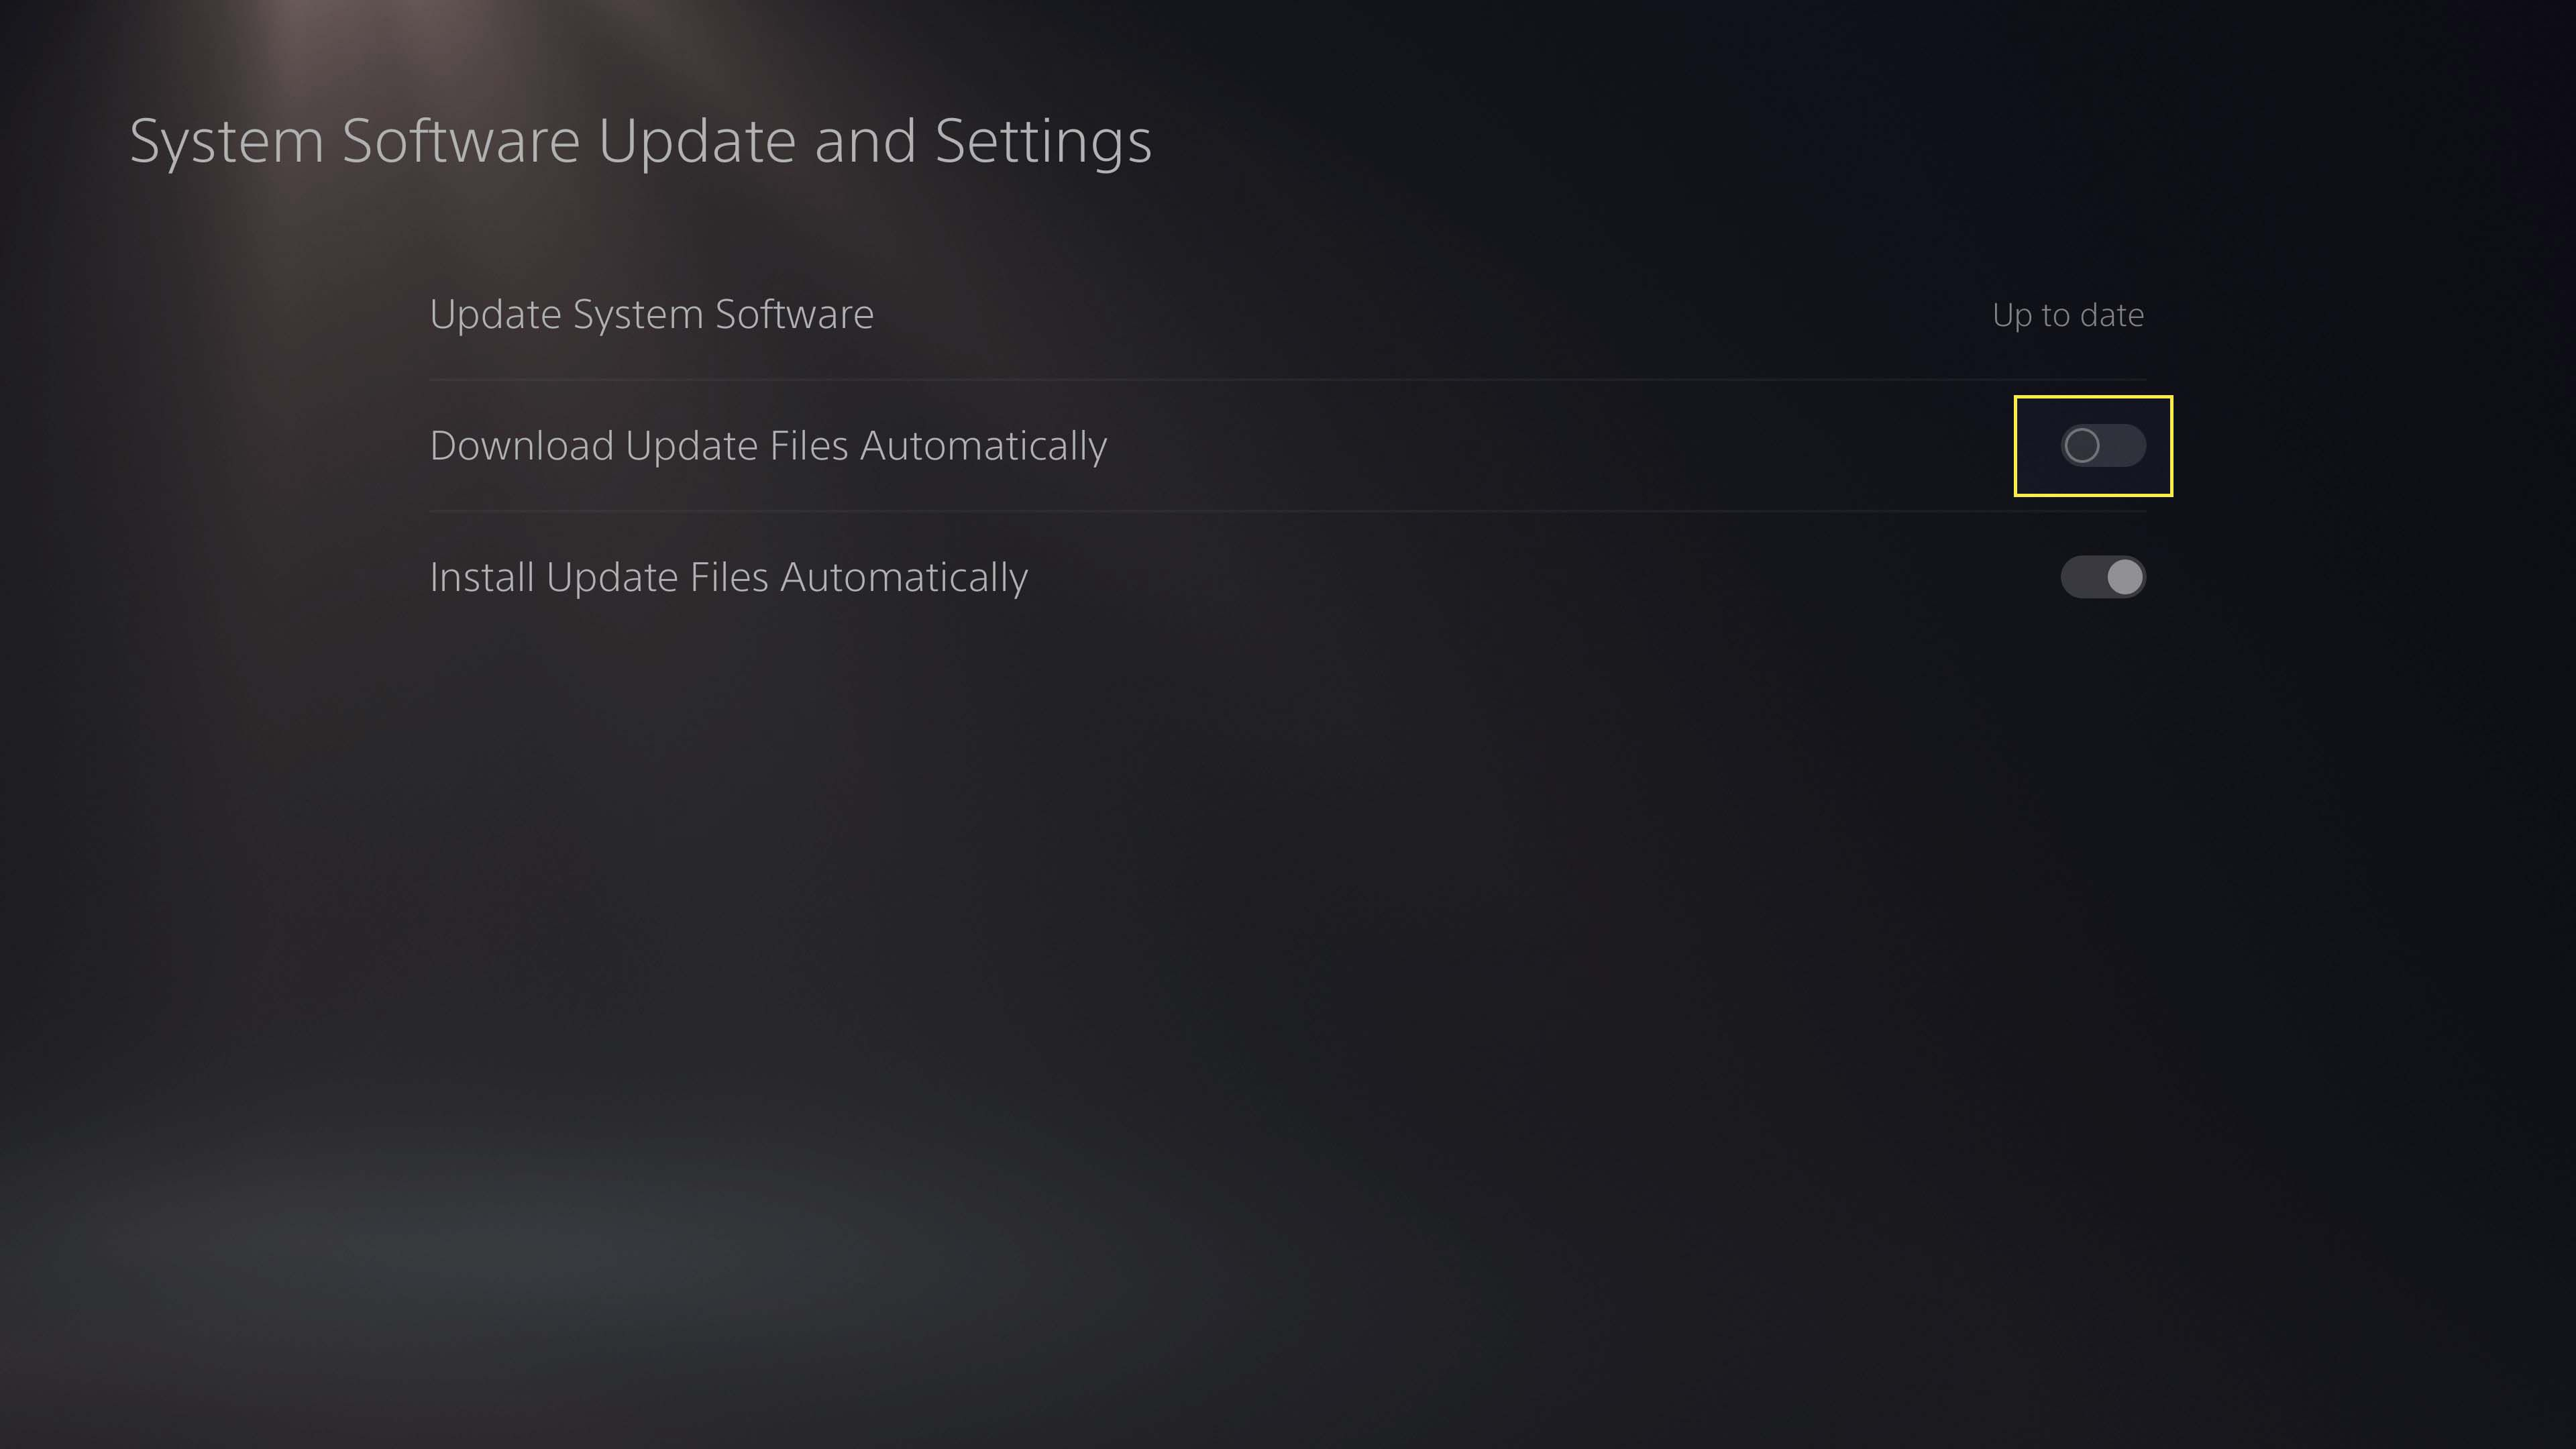 Turning off Download Update Files Automatically setting on PS5.